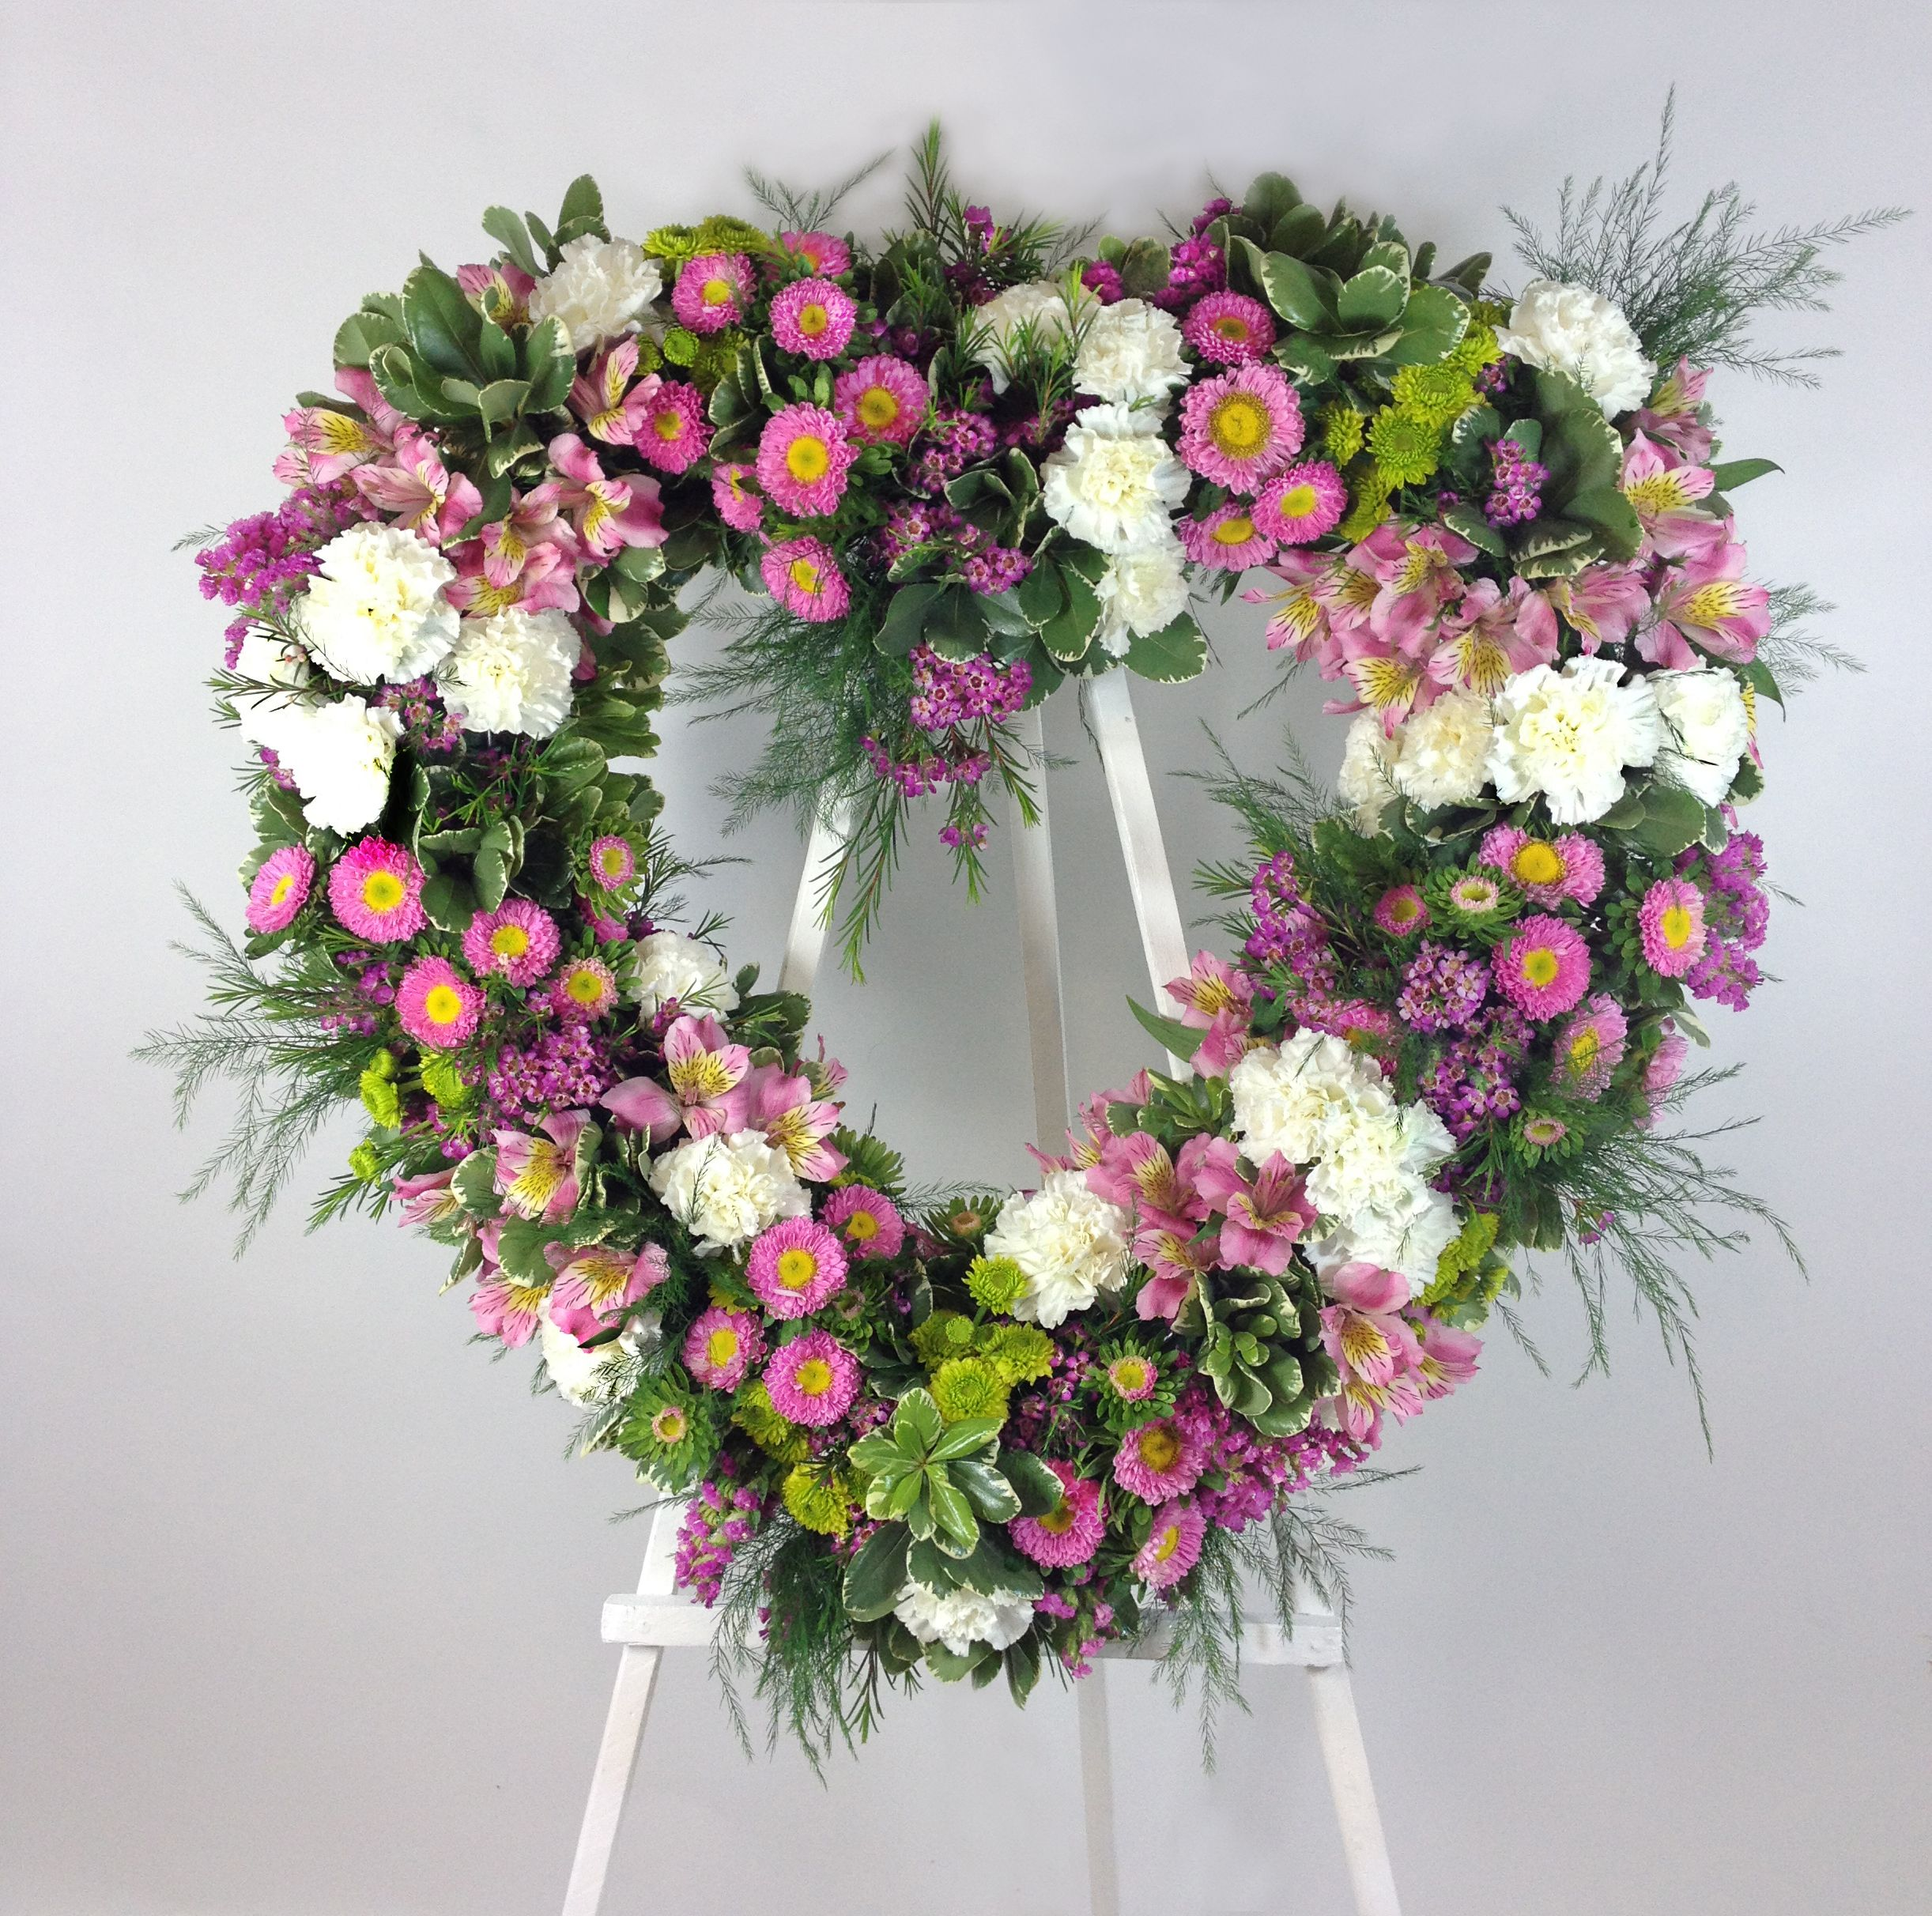 Pink white green heart shape funeral spray with carnations aster pink white green heart shape funeral spray with carnations aster alstromeria izmirmasajfo Gallery